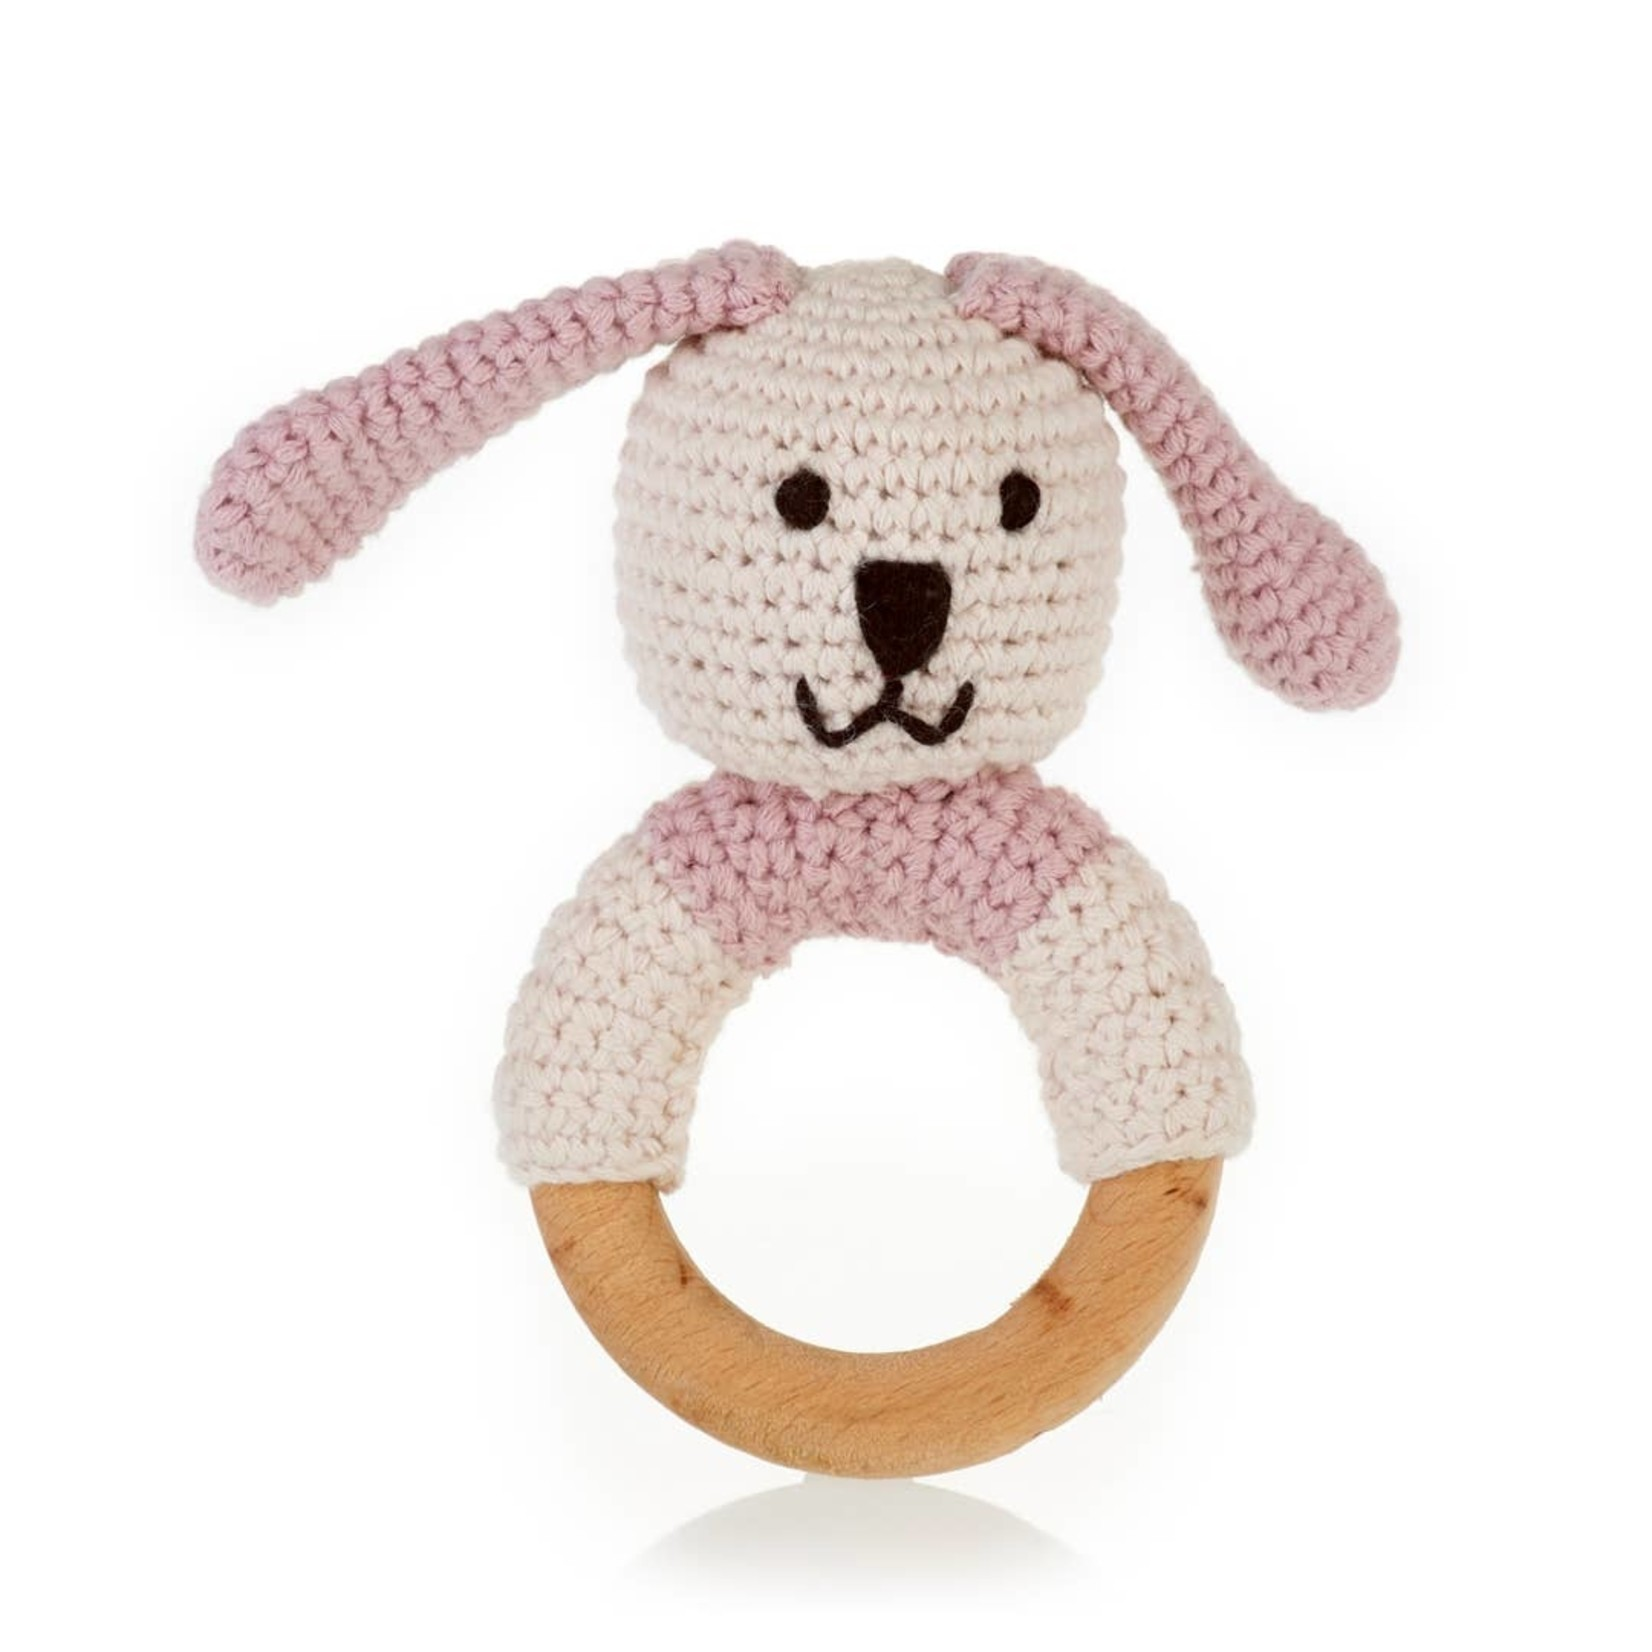 Wooden Teething Ring Bunny in Pink